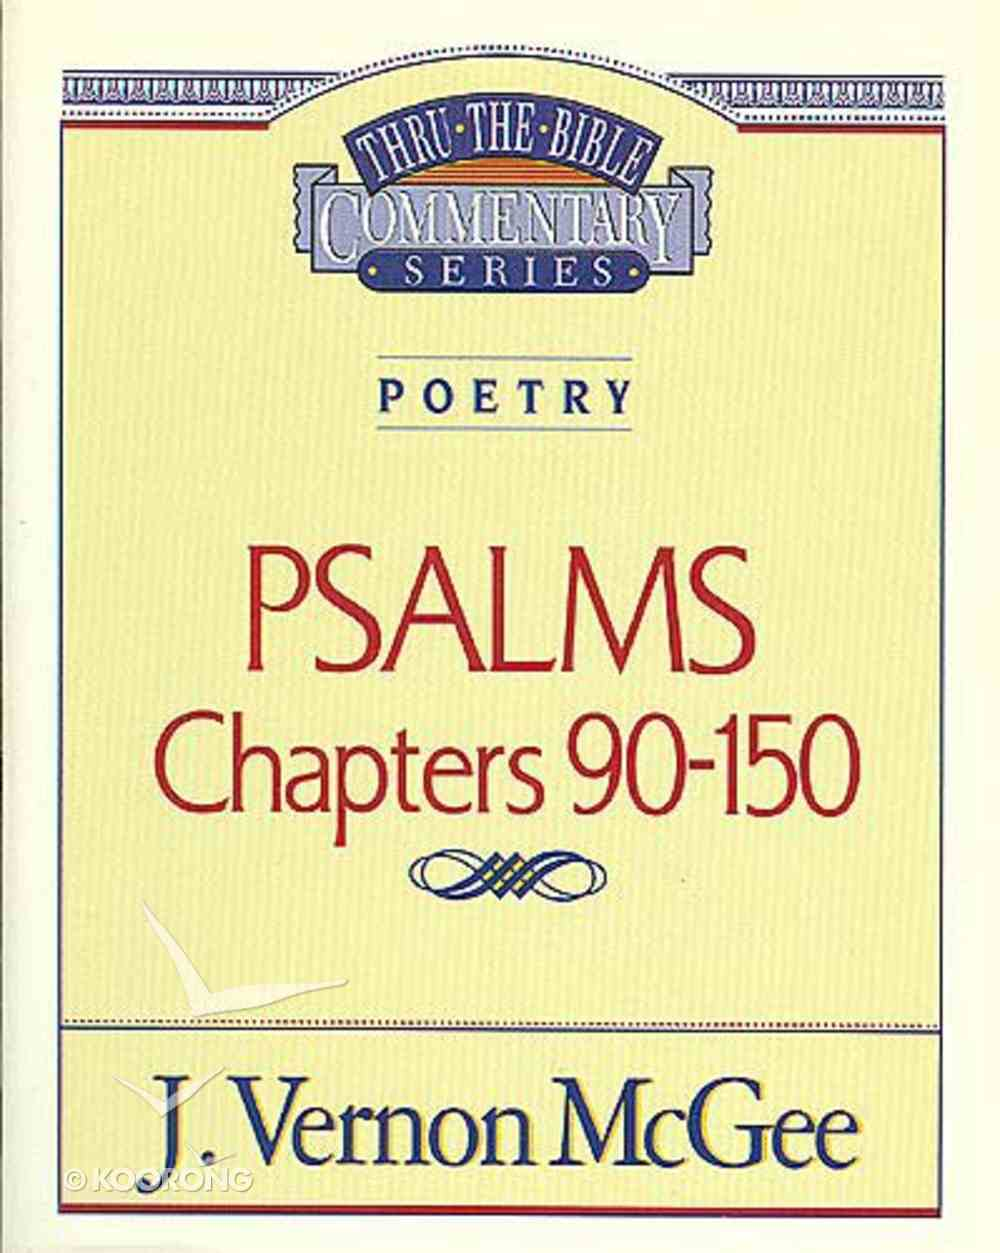 Thru the Bible OT #19: Psalms (Volume 3) (#19 in Thru The Bible Old Testament Series) Paperback